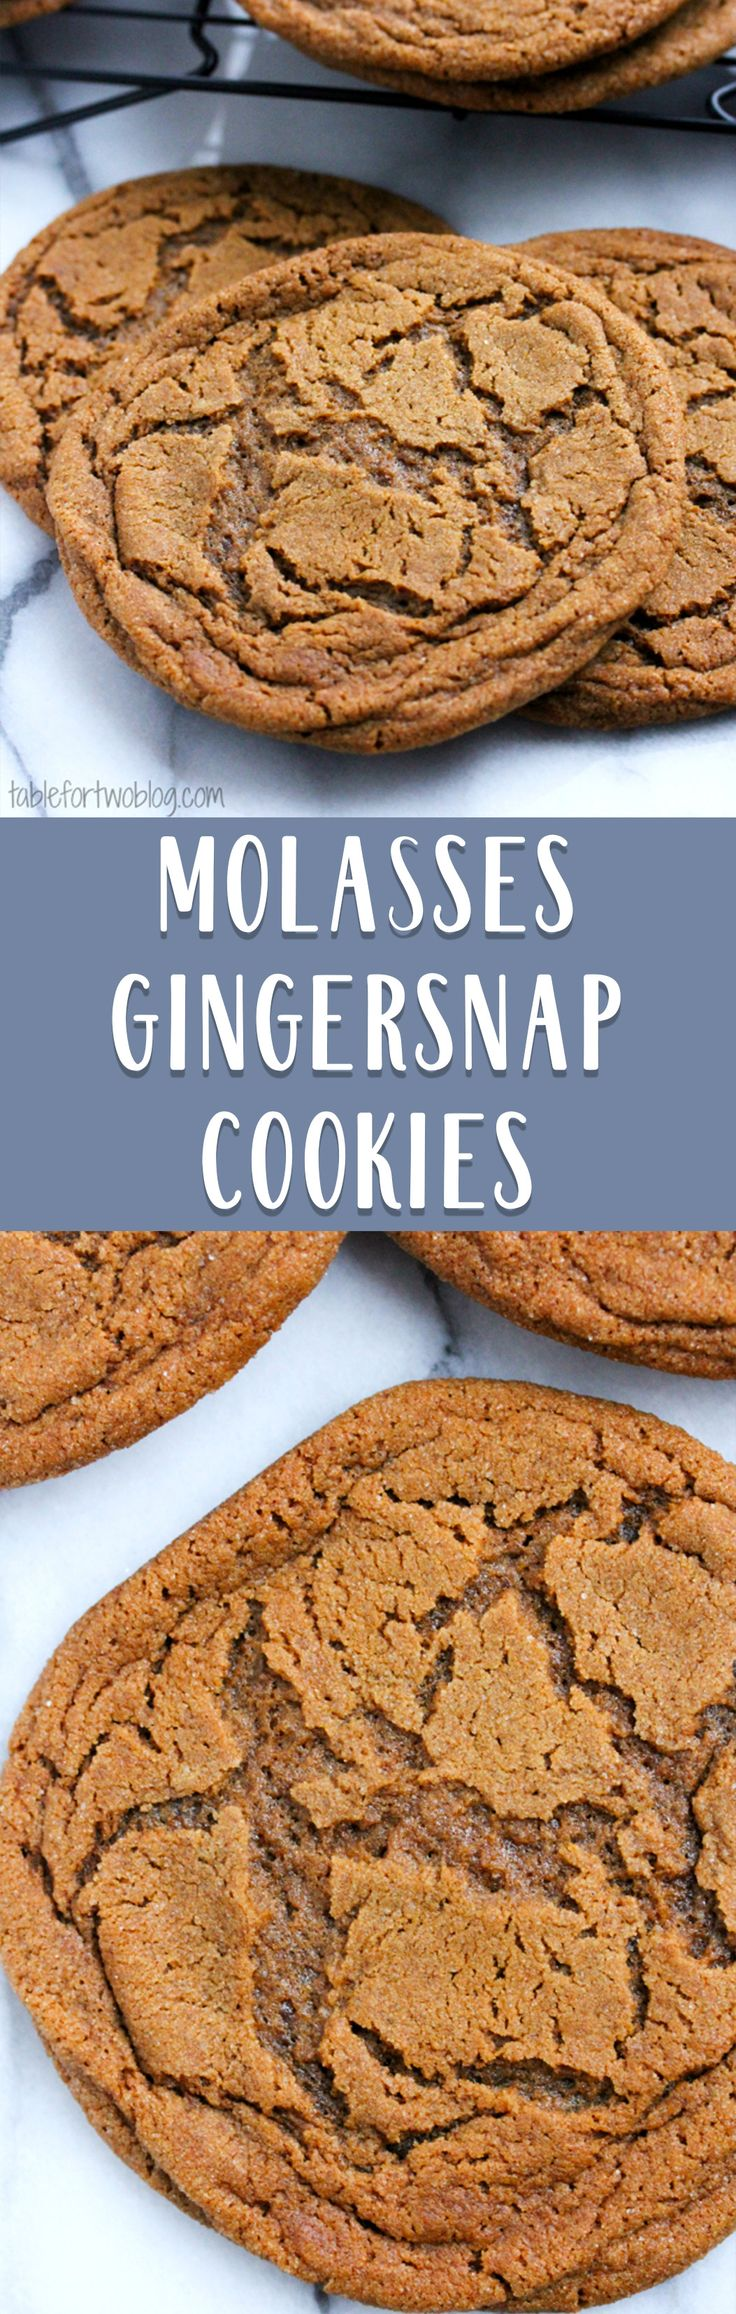 Molasses ginger cookies are soft and chewy with the perfect amount of ginger flavor